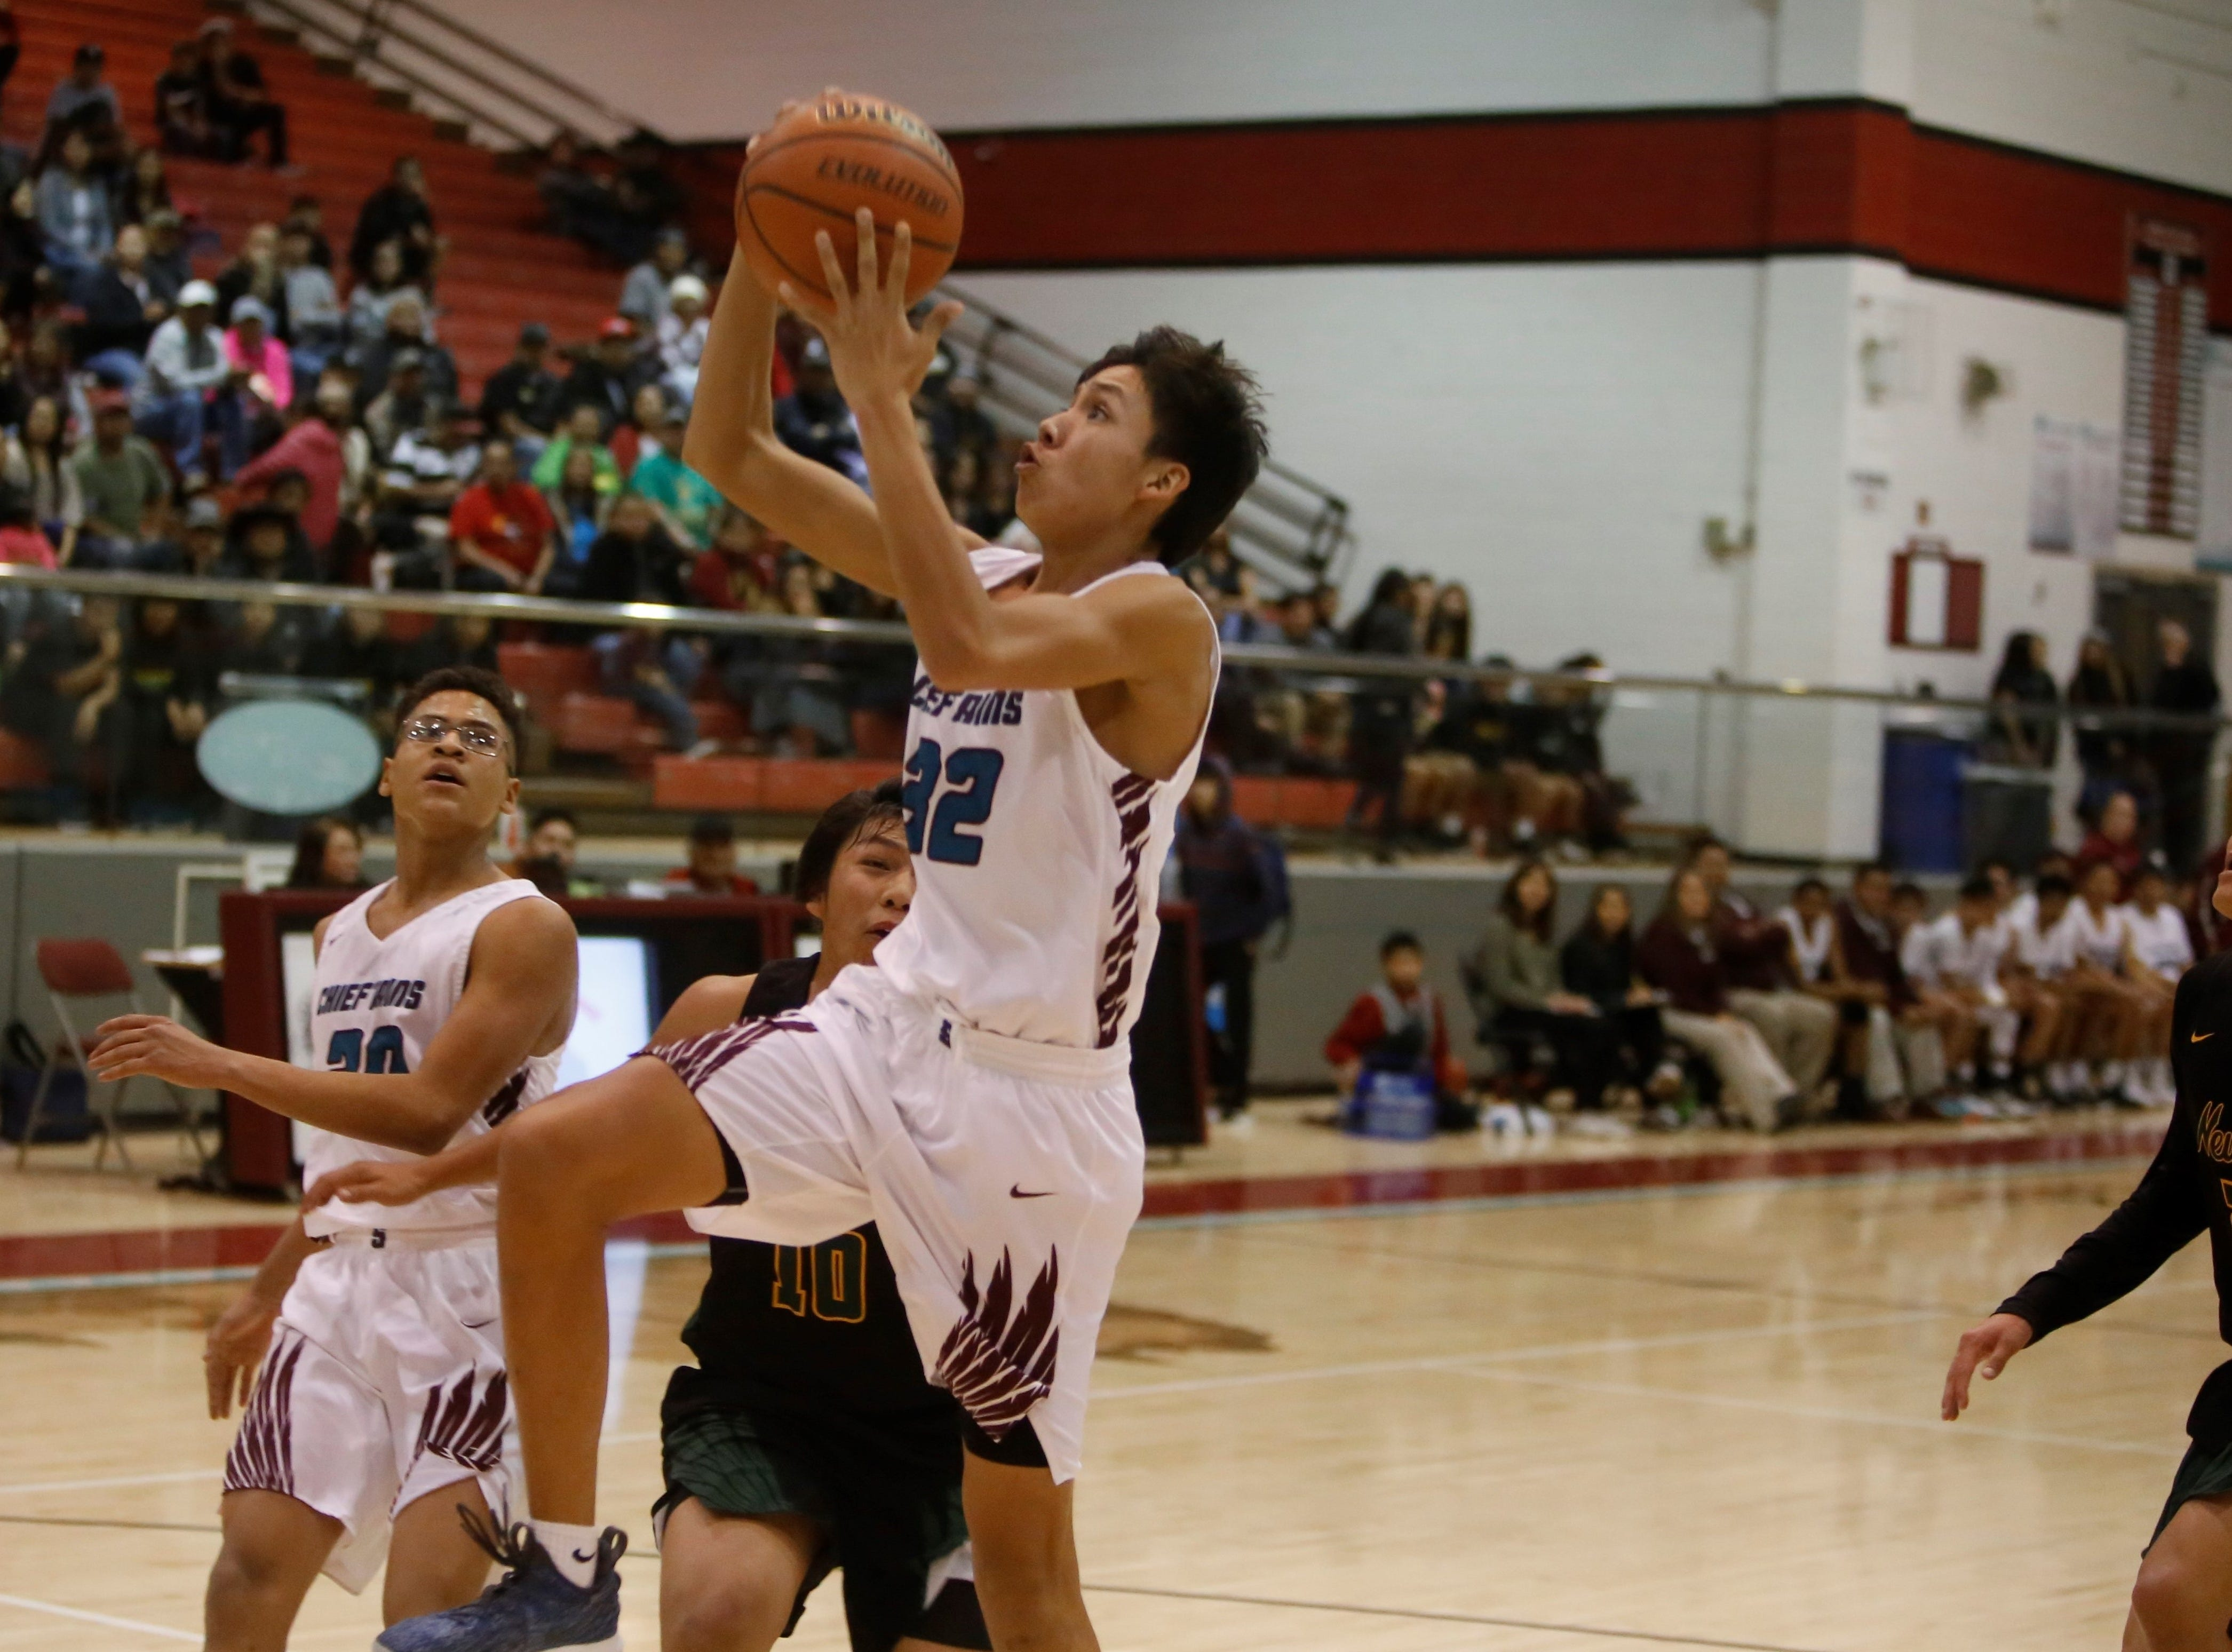 Shiprock's Shannon Dale drives to the basket against Newcomb during Thursday's game at the Chieftain Pit in Shiprock.